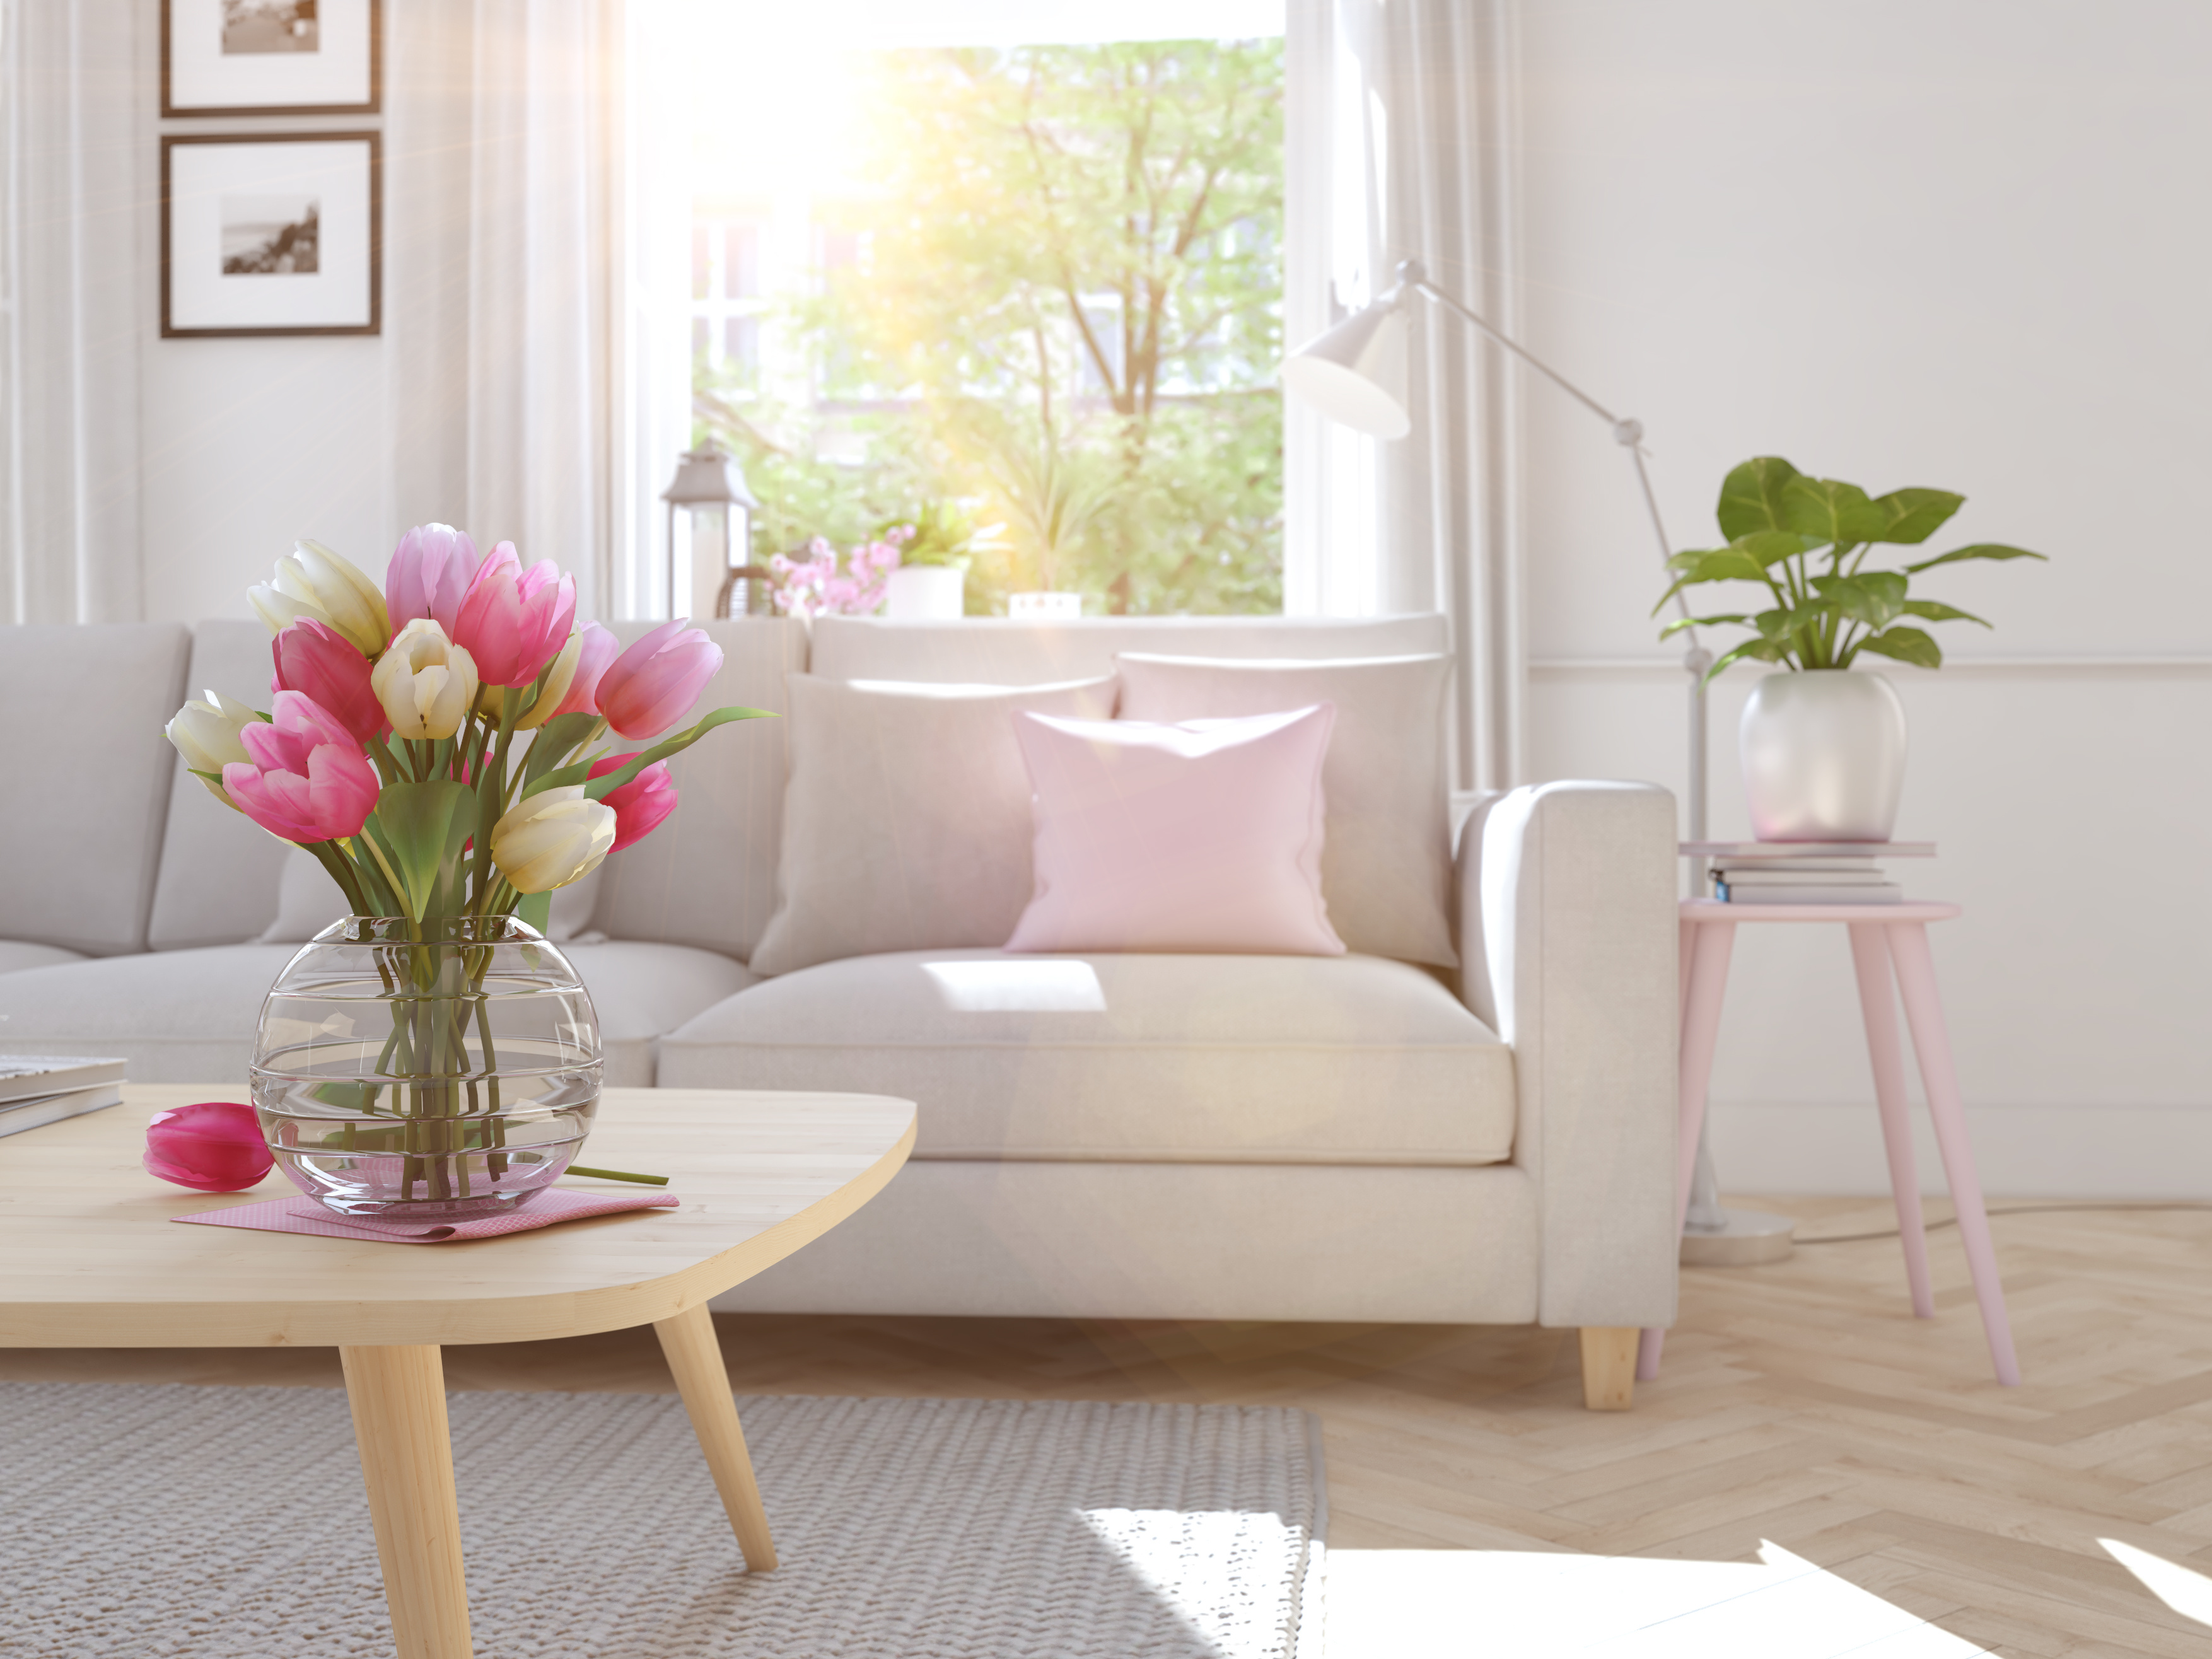 modern living room with tulips on table